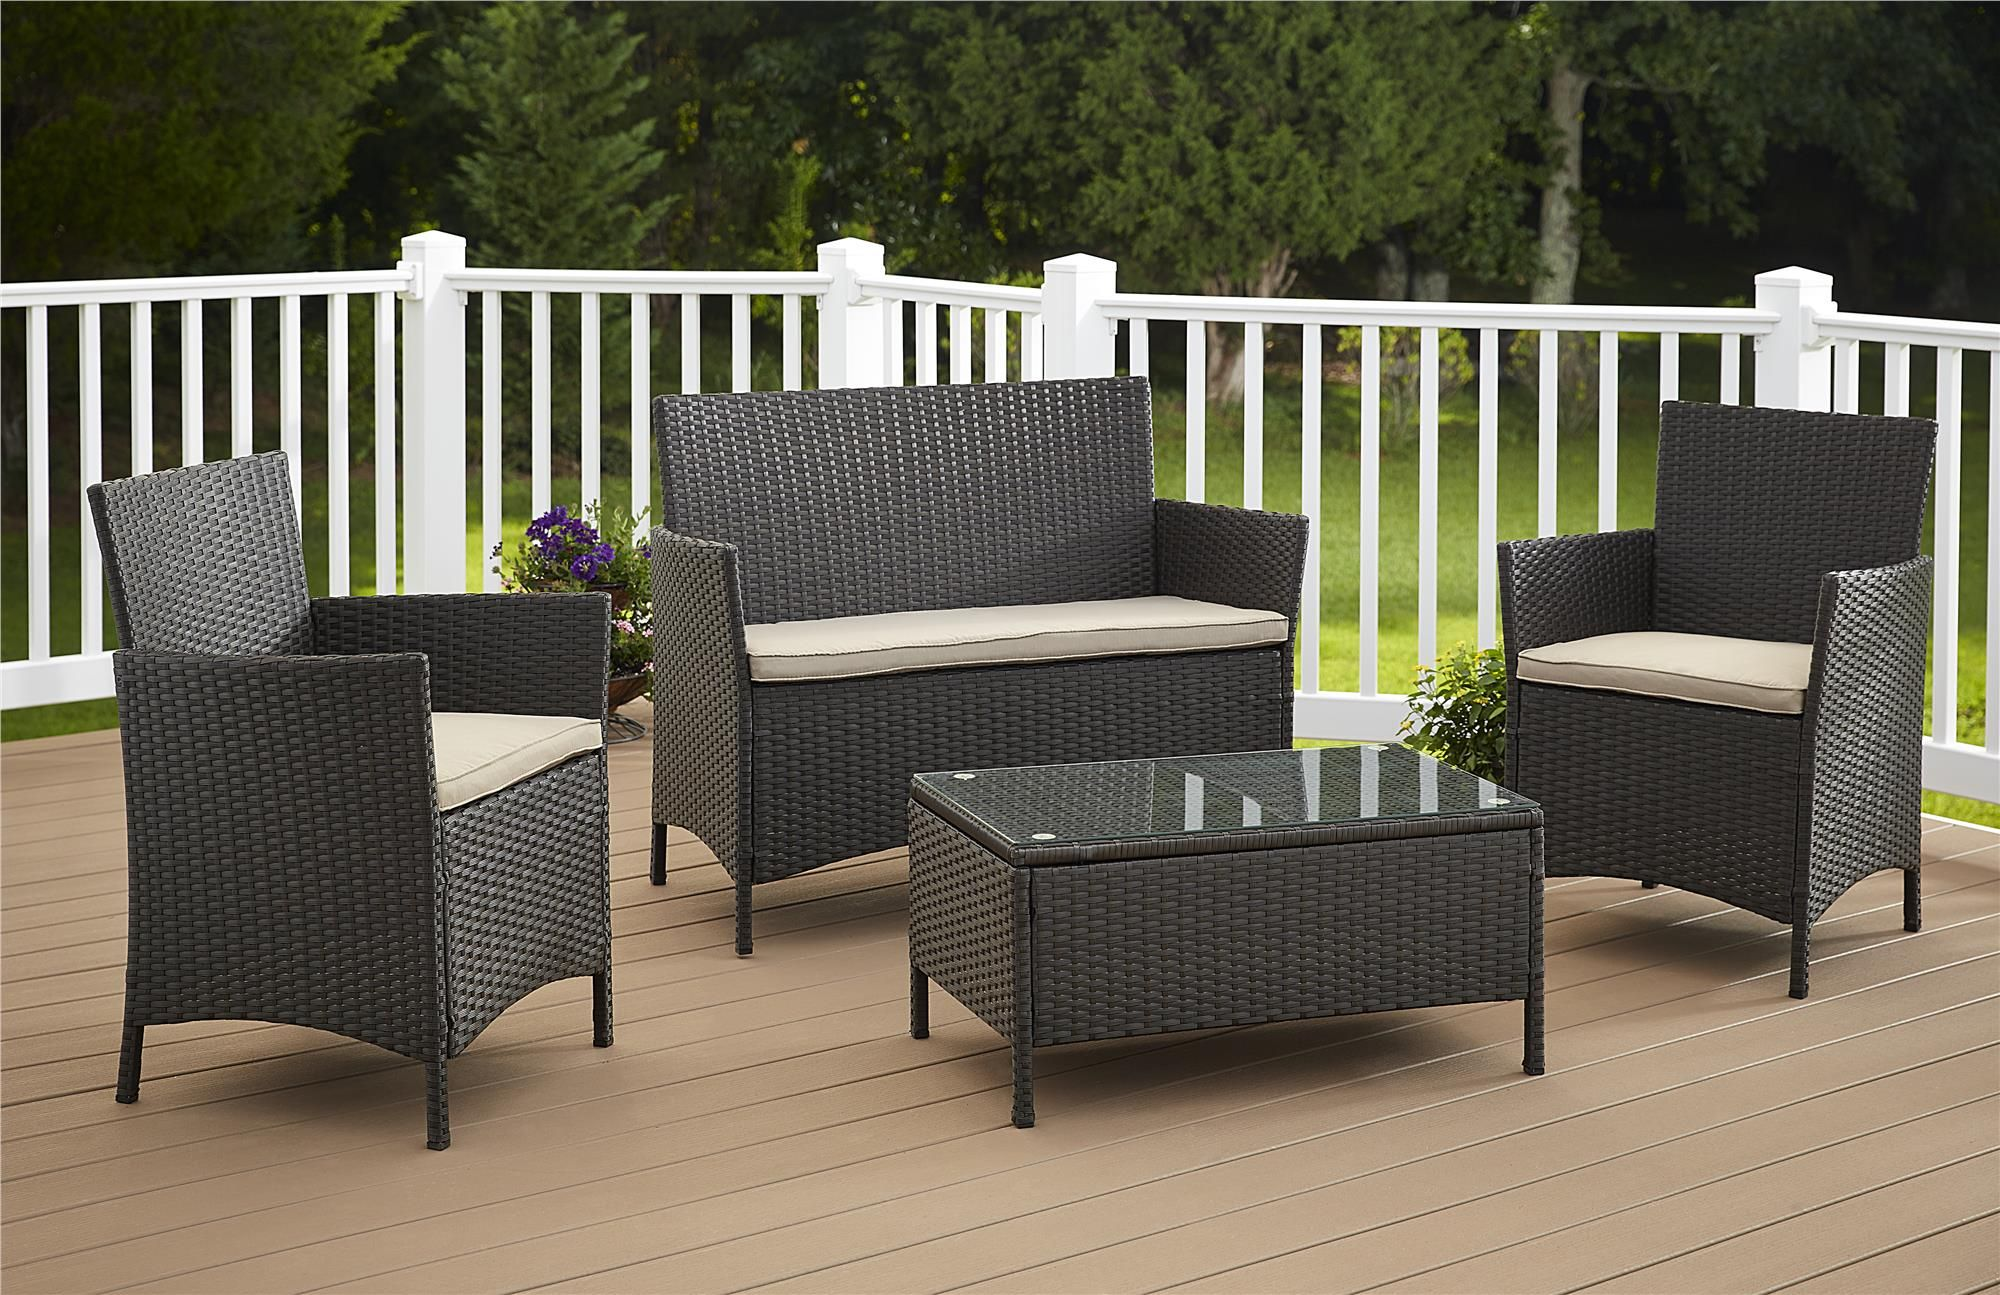 Turn your outdoor space into a comfortable seating and lounge area with this all weather jamaica 4 piece resin wicker set the chairs and bench both feature